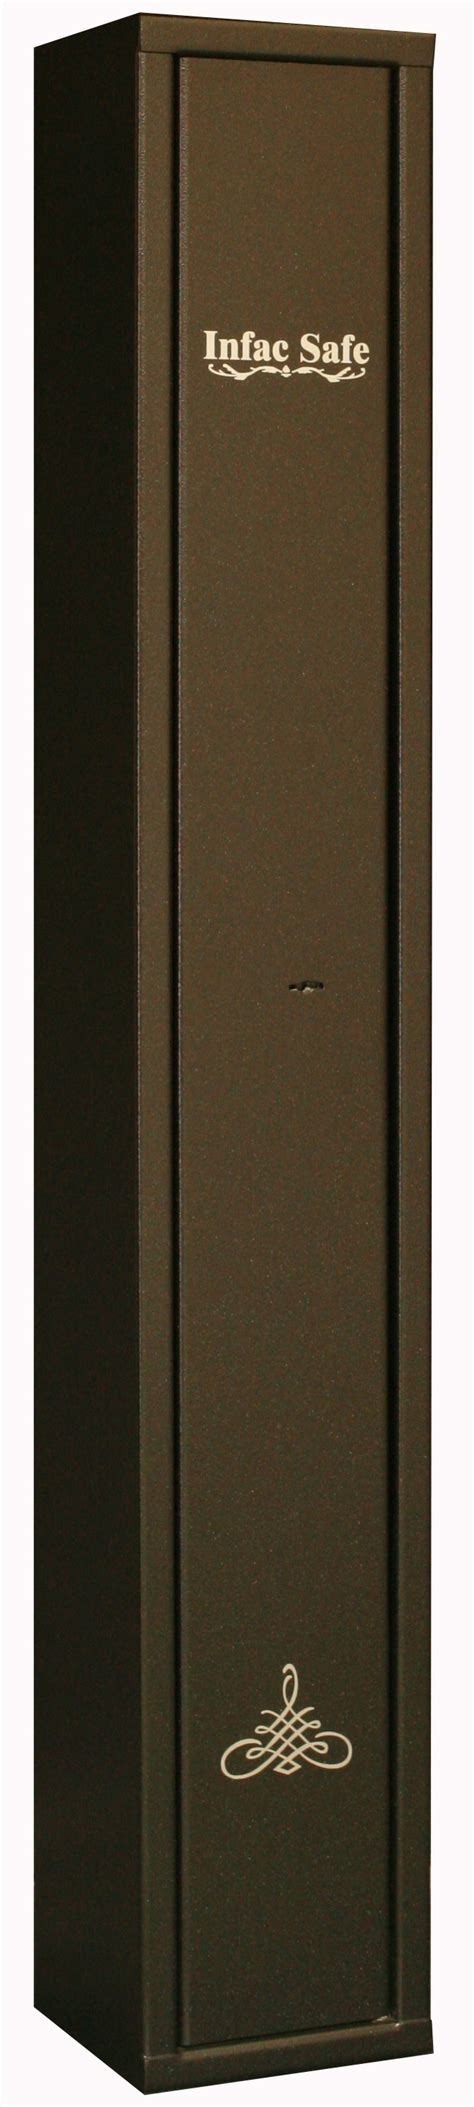 coffre fort infac sentinel s3 3 armes armoire forte